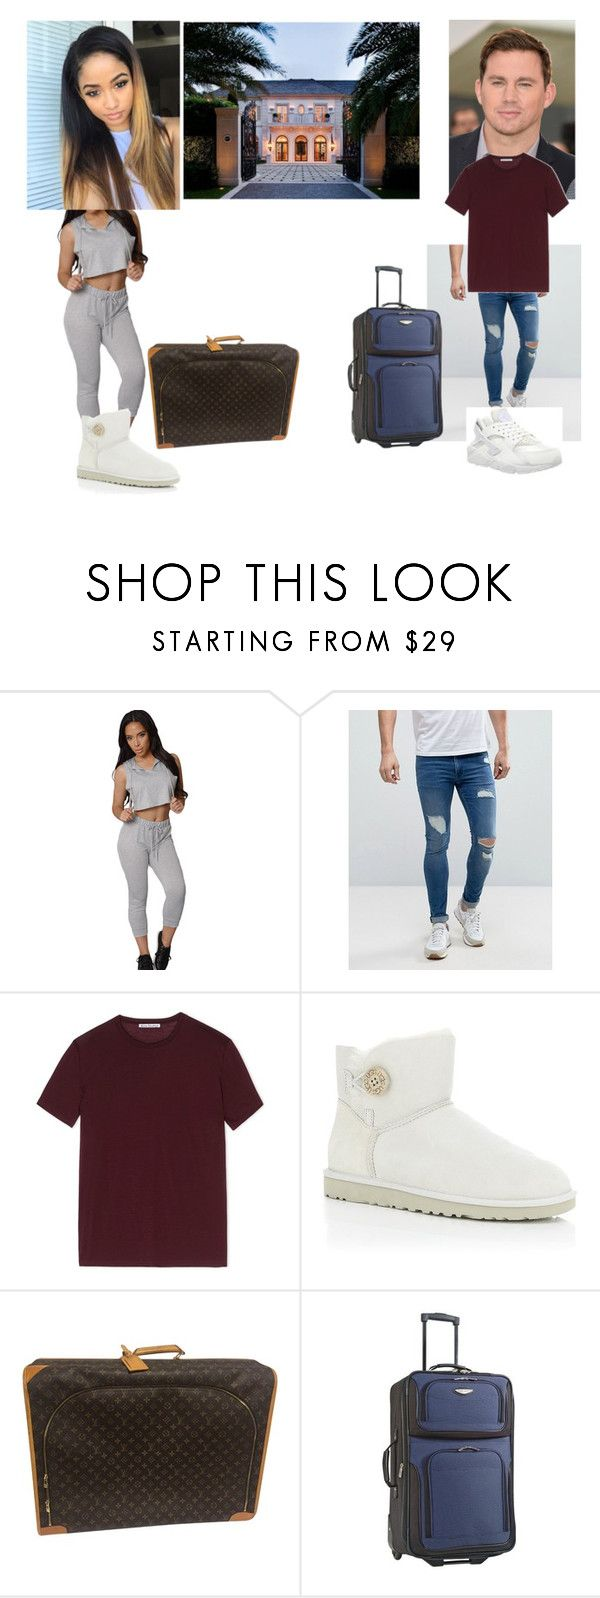 """""""☀kayla & channing☀going to the wedding house."""" by geazybxtch24 ❤ liked on Polyvore featuring interior, interiors, interior design, home, home decor, interior decorating, ASOS, Acne Studios, UGG Australia and Louis Vuitton"""